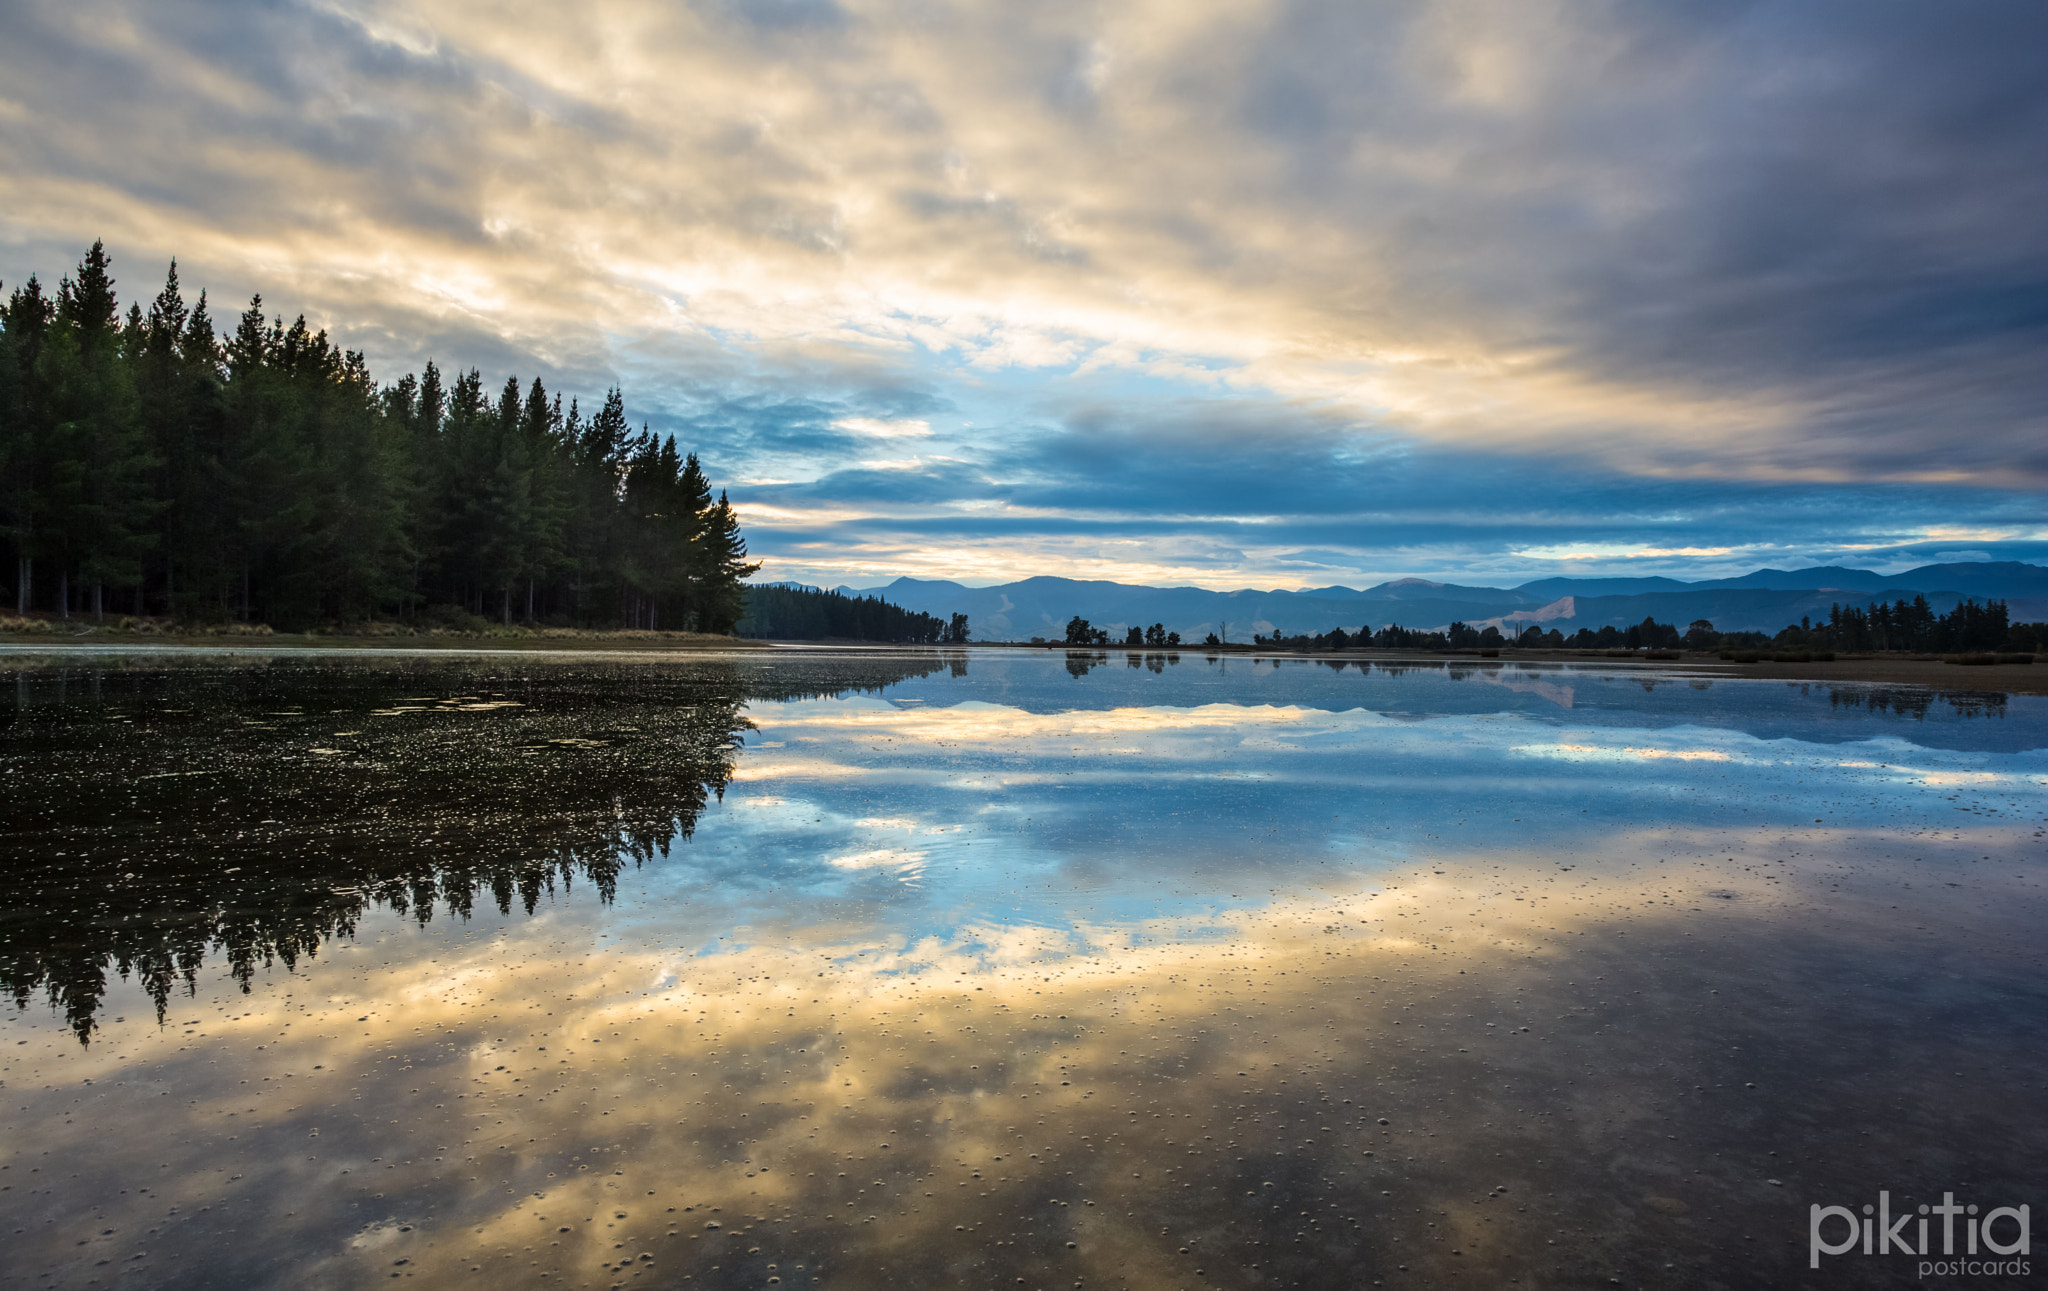 Photograph Reflections of Nelson in the Marsh by Pikitia Postcards  on 500px